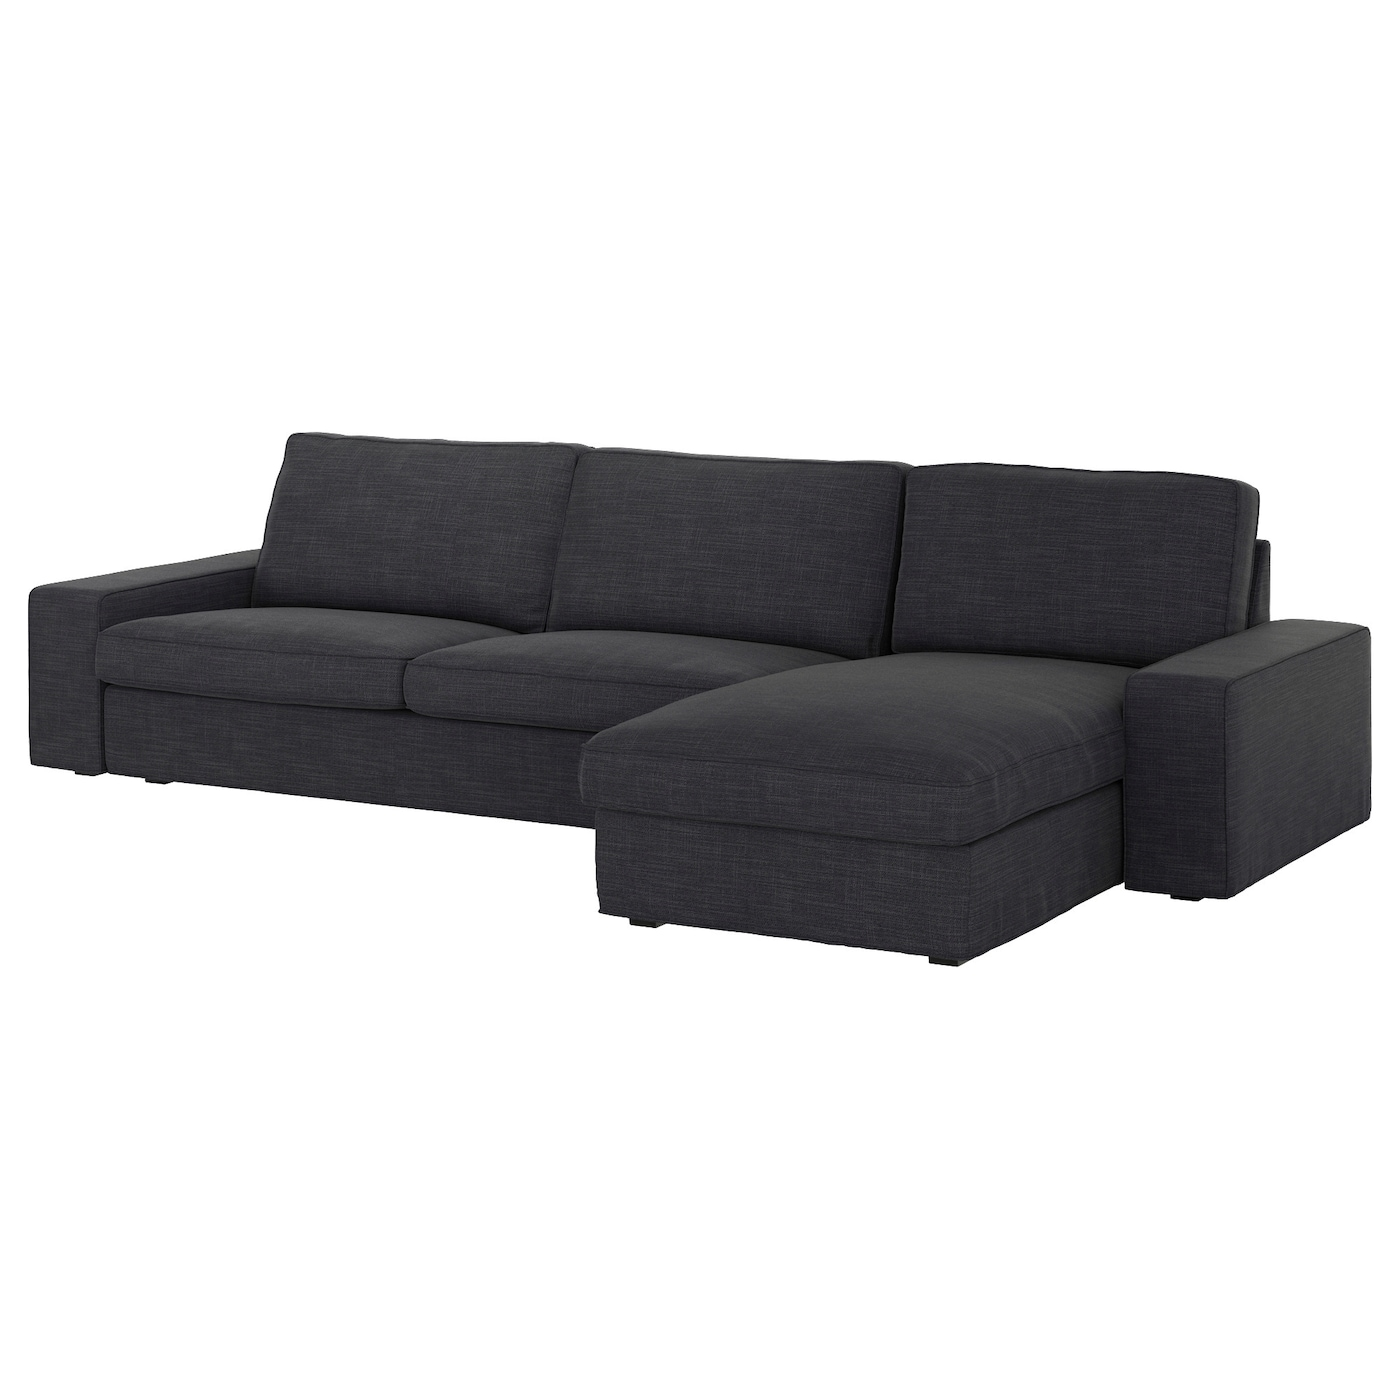 Kivik three seat sofa and chaise longue hillared for Chaise longue furniture